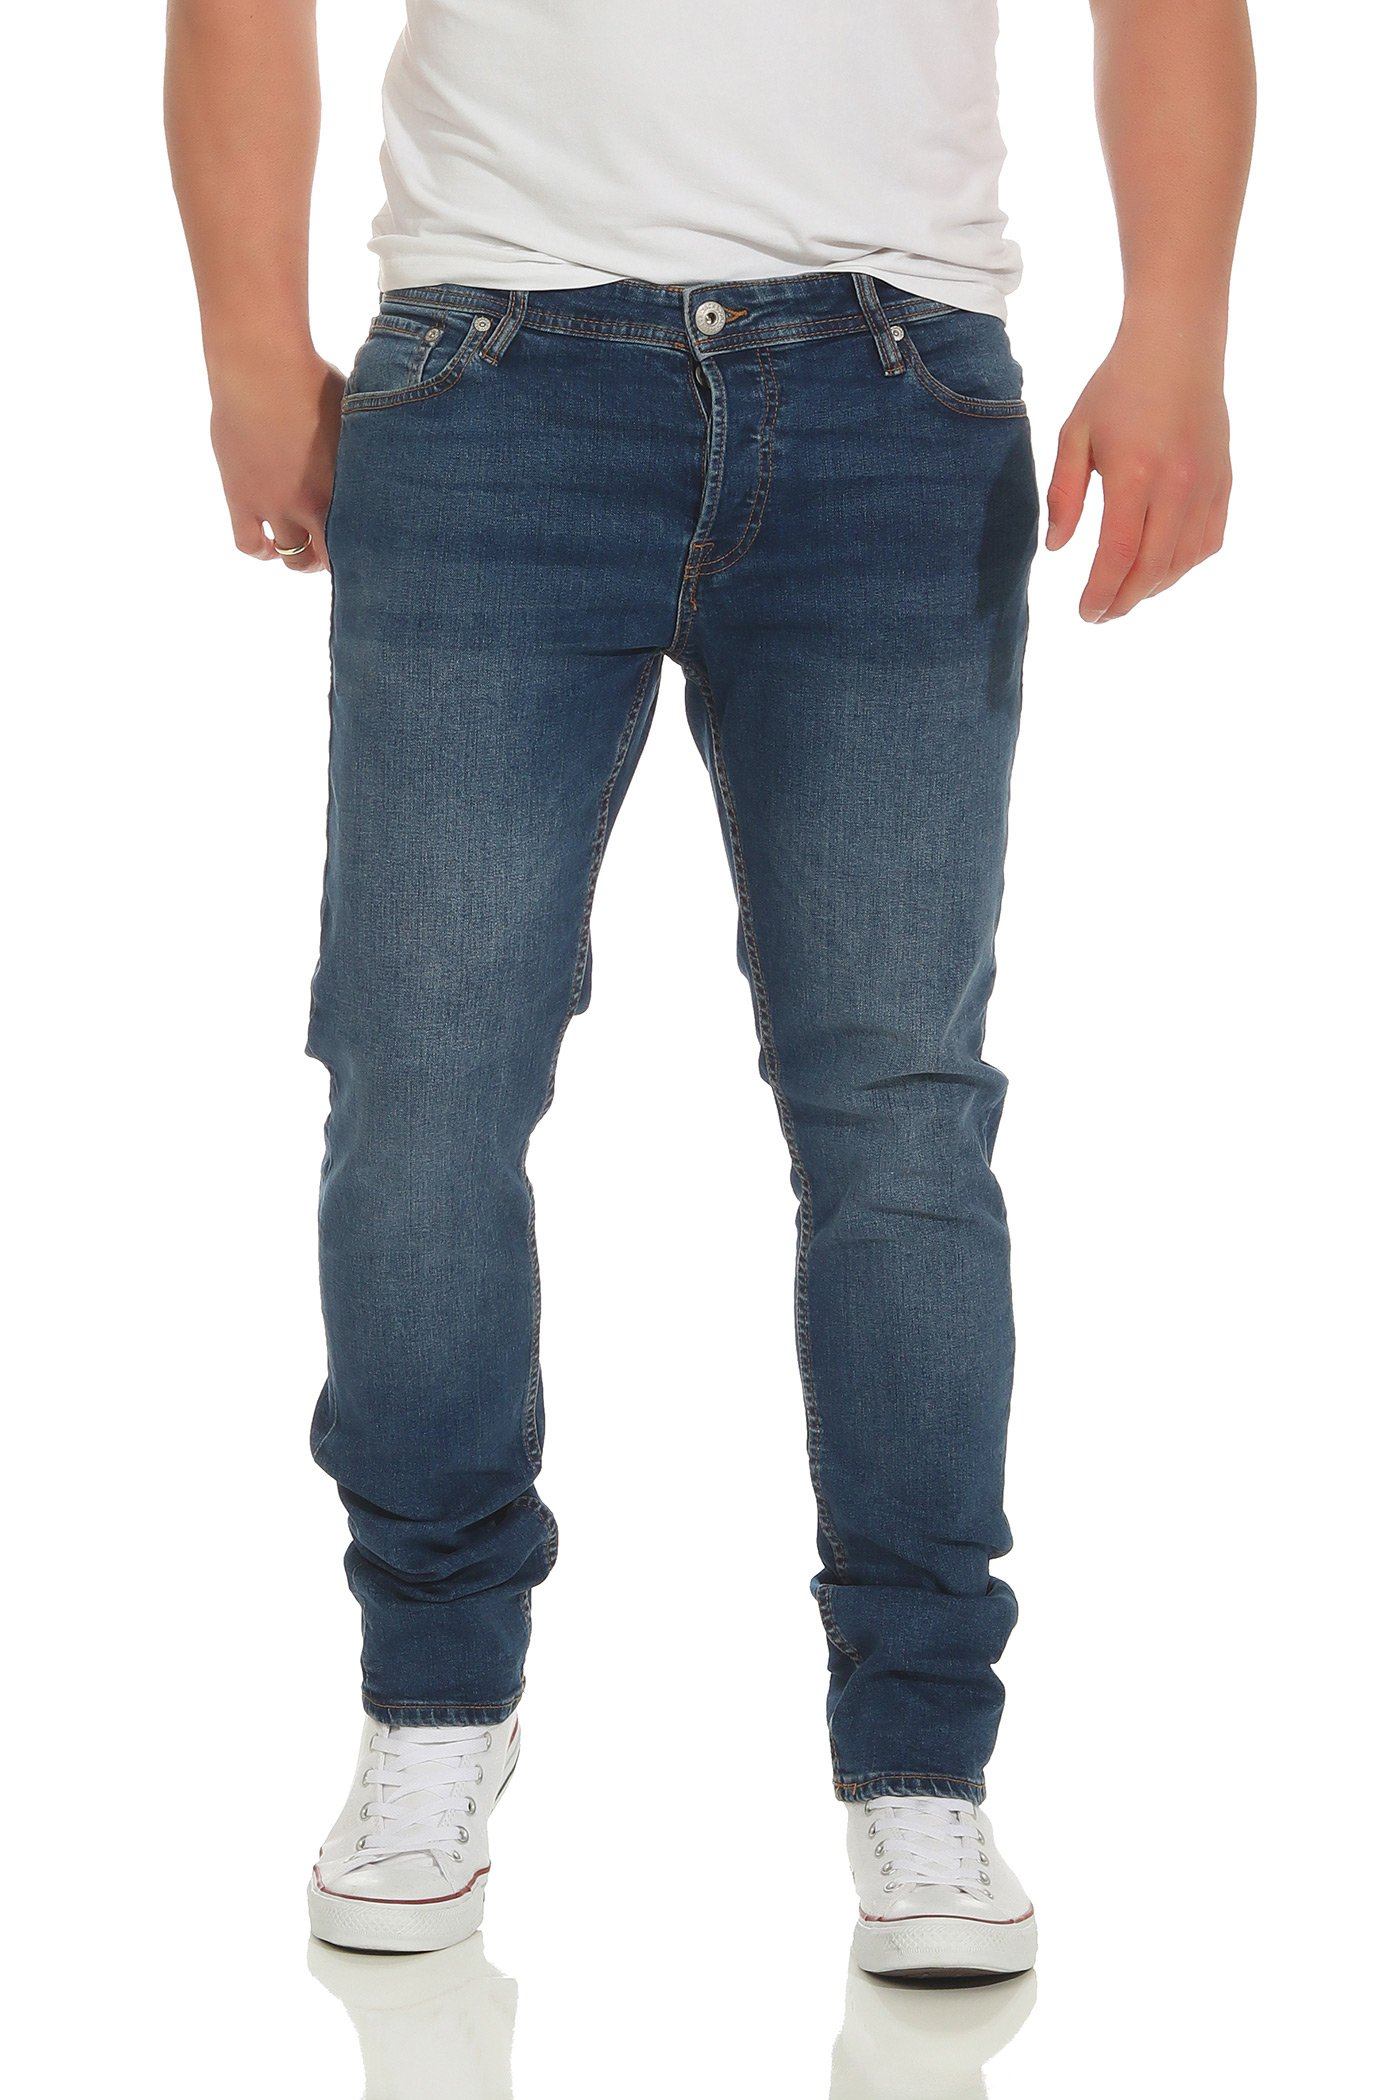 JACK and JONES JJIGLENN NZ Blue Denim